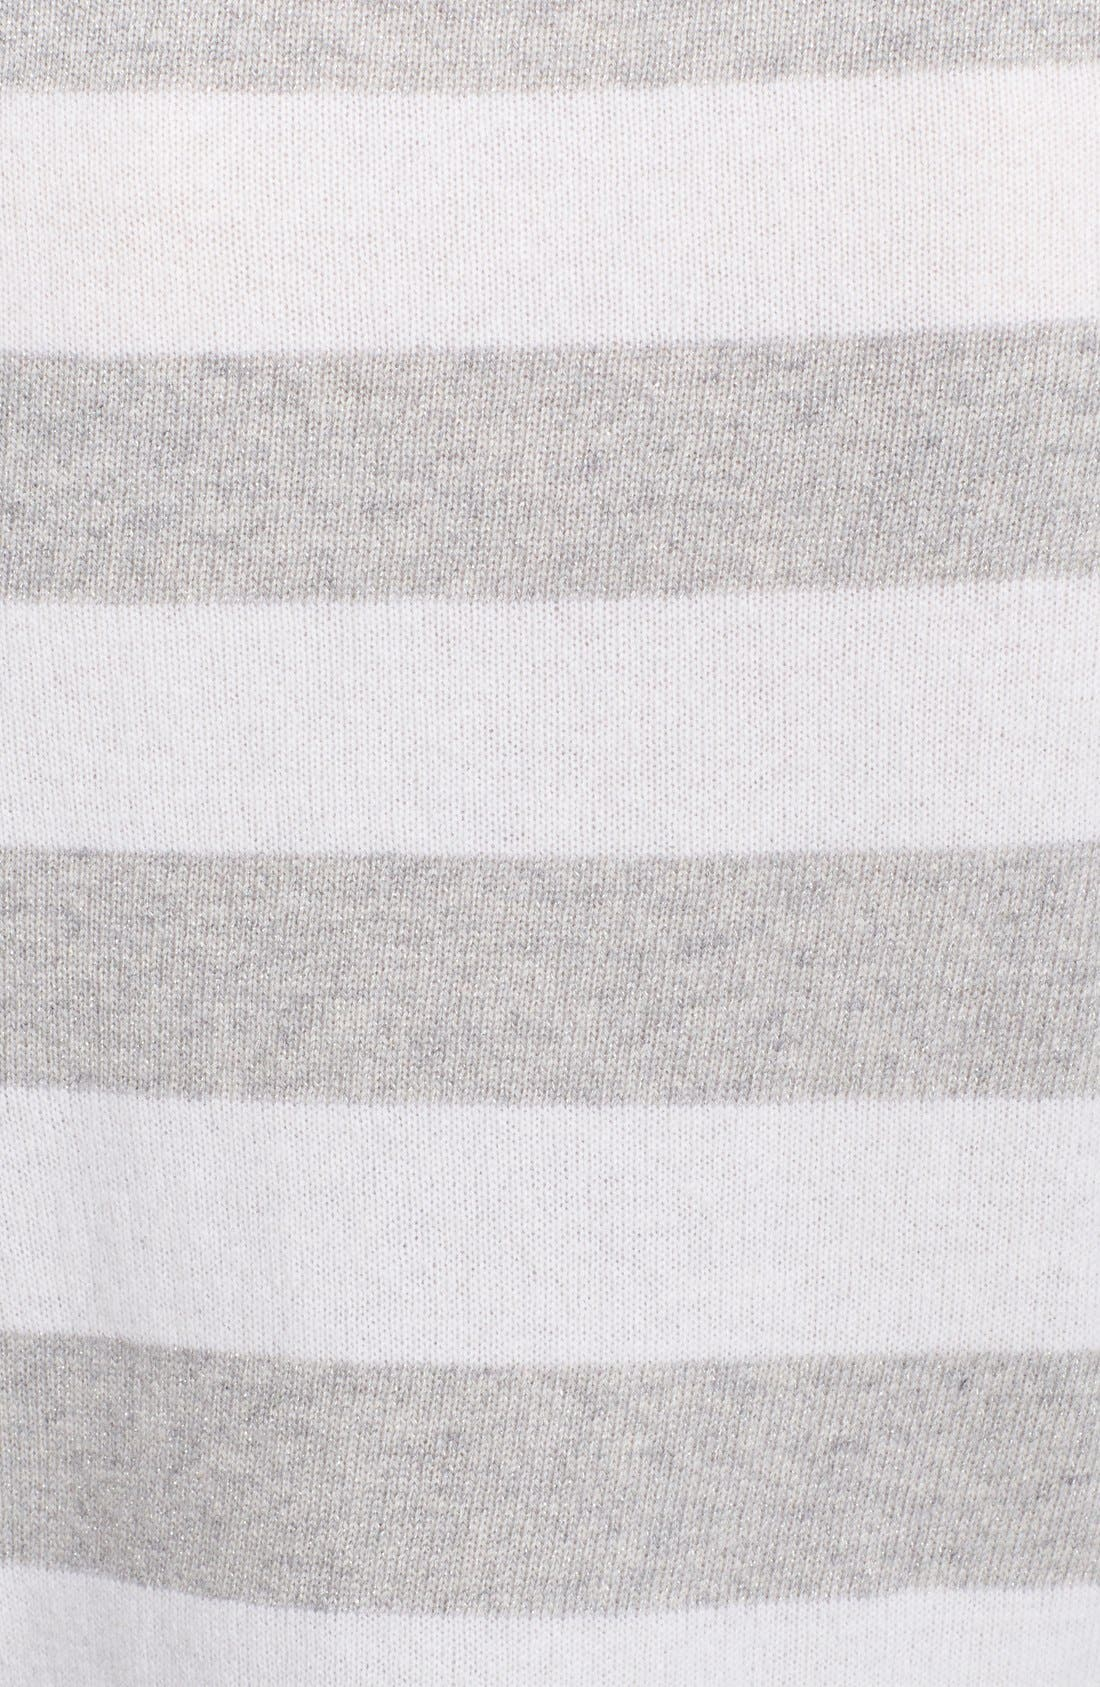 Alternate Image 3  - Equipment 'Sloane' Metallic Stripe Cashmere Sweater